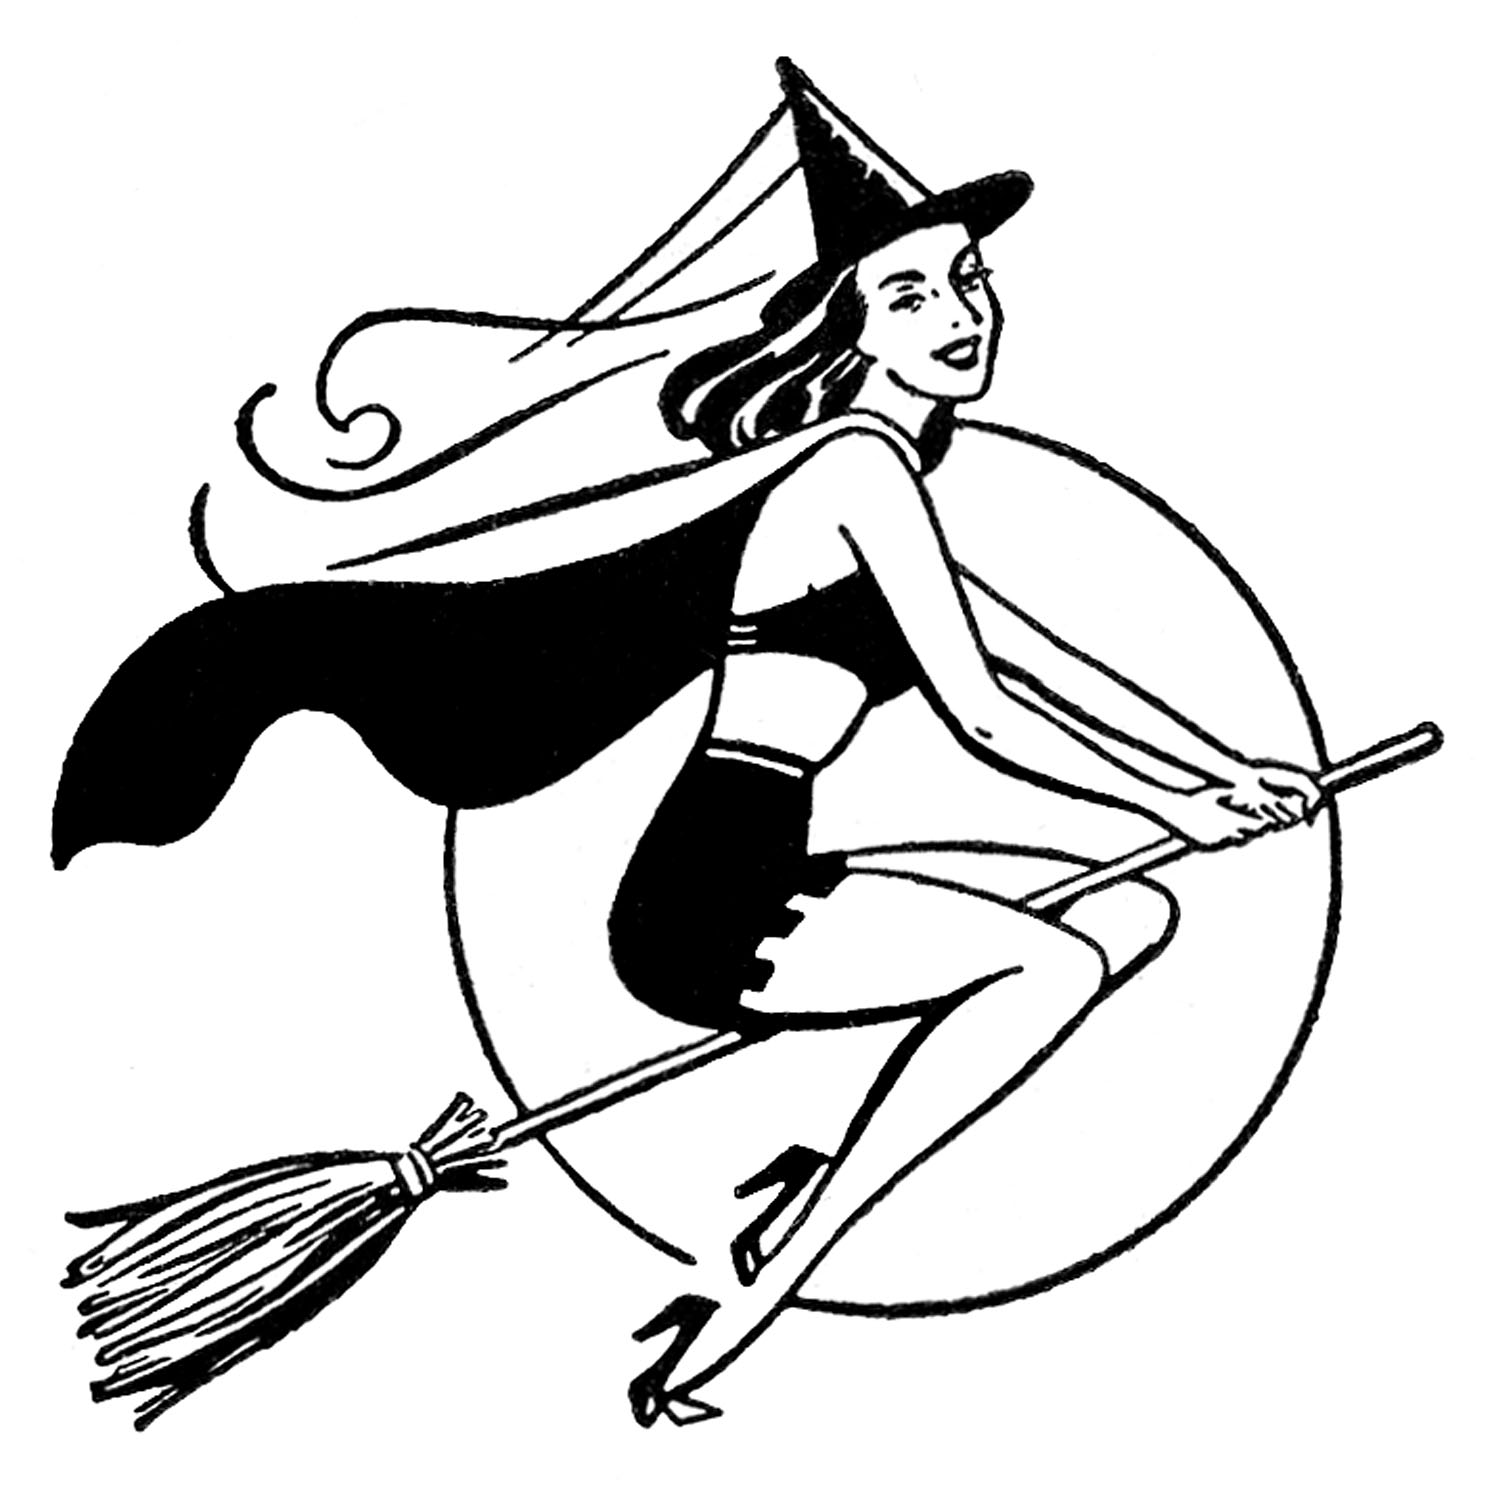 coloring clipart halloween black and white 4 pretty witch clipart the graphics fairy white coloring clipart and black halloween